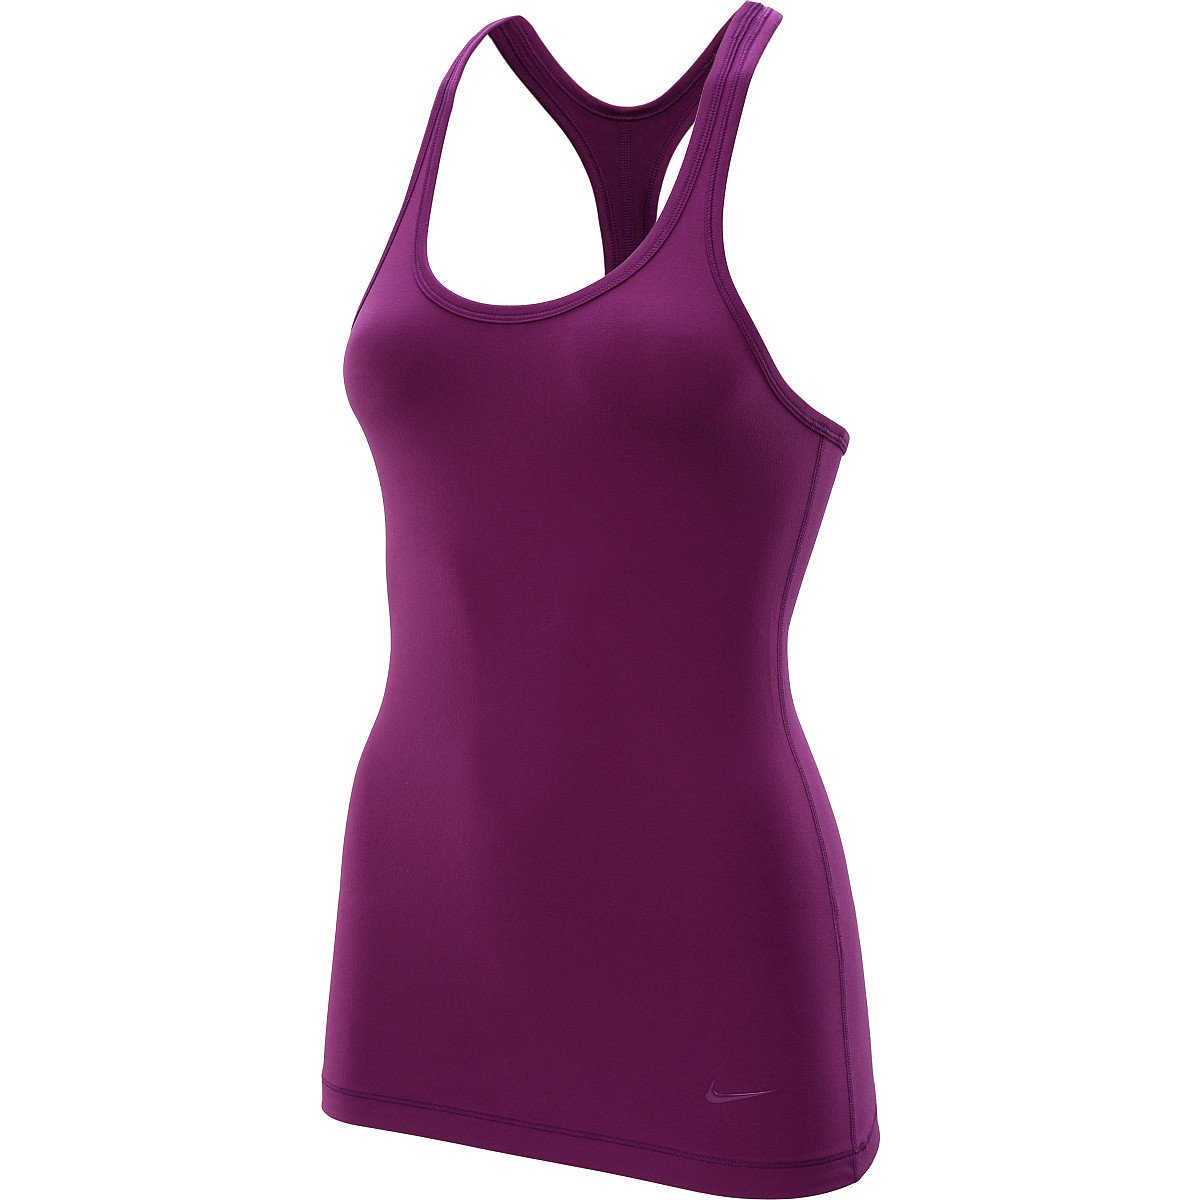 NIKE Women's Knockout Tank Top - Size: XS/Extra Small, Grape by NIKE